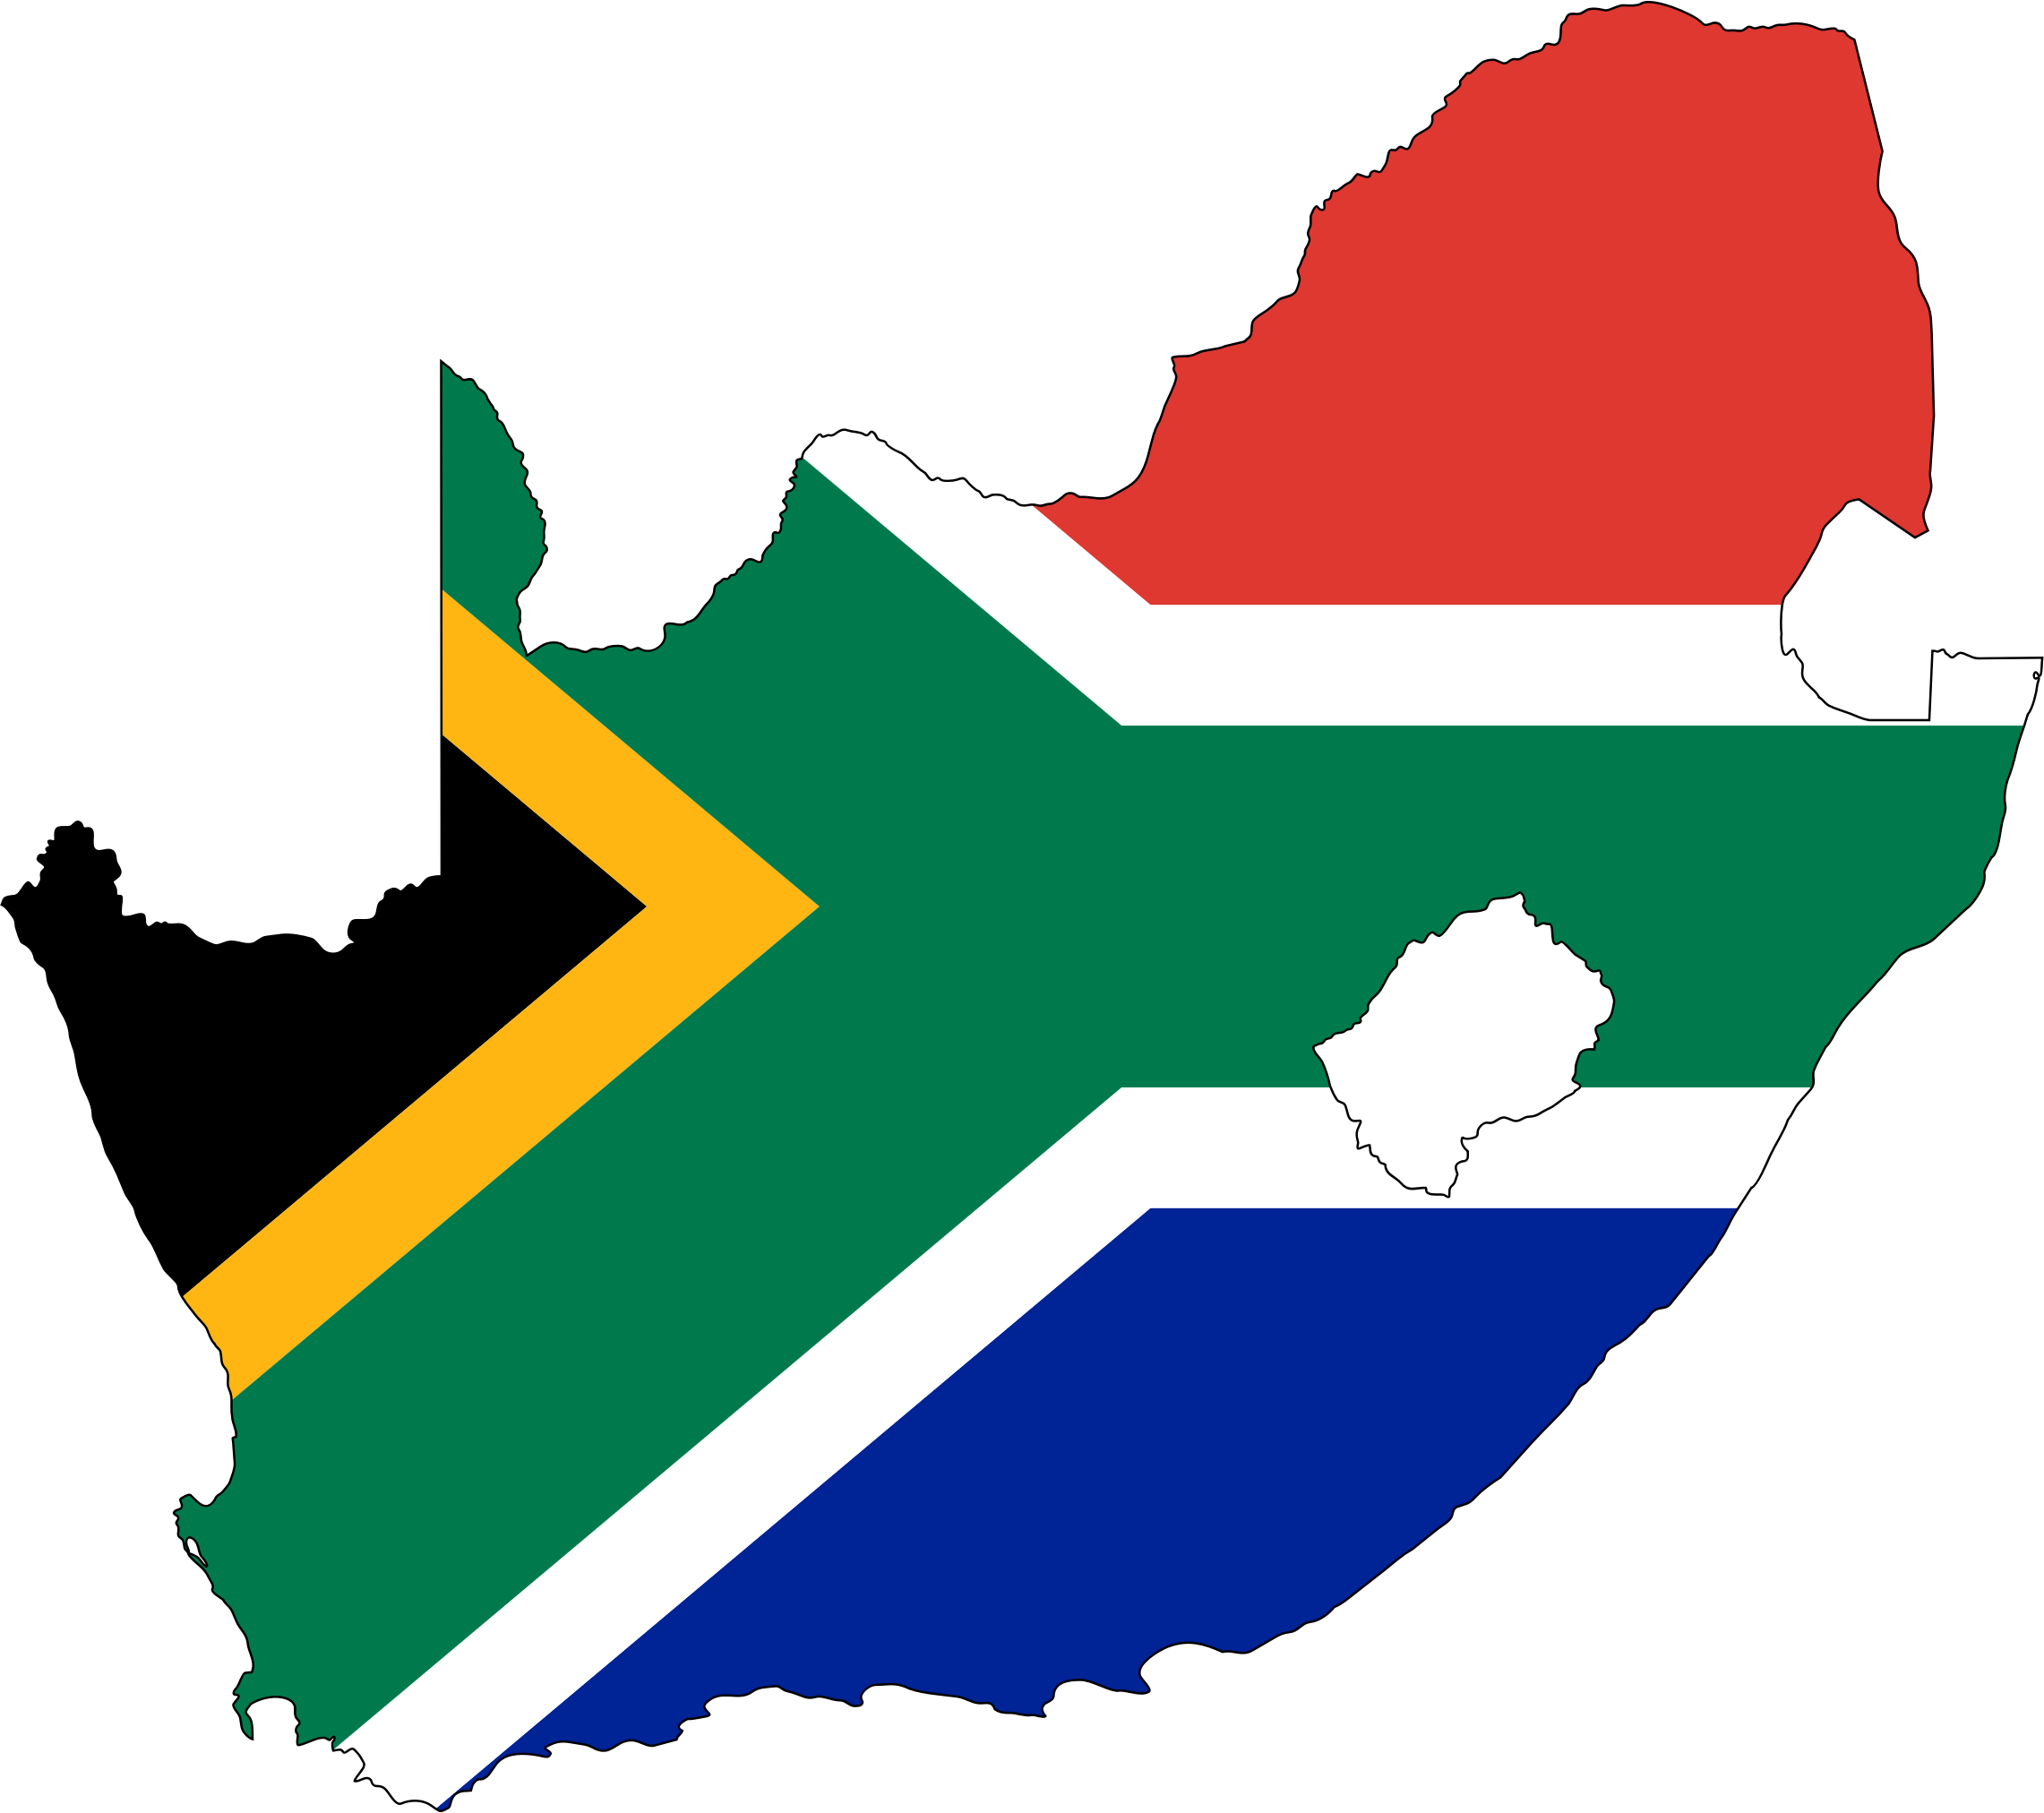 South Africa Flag Map With Stroke by GDJ